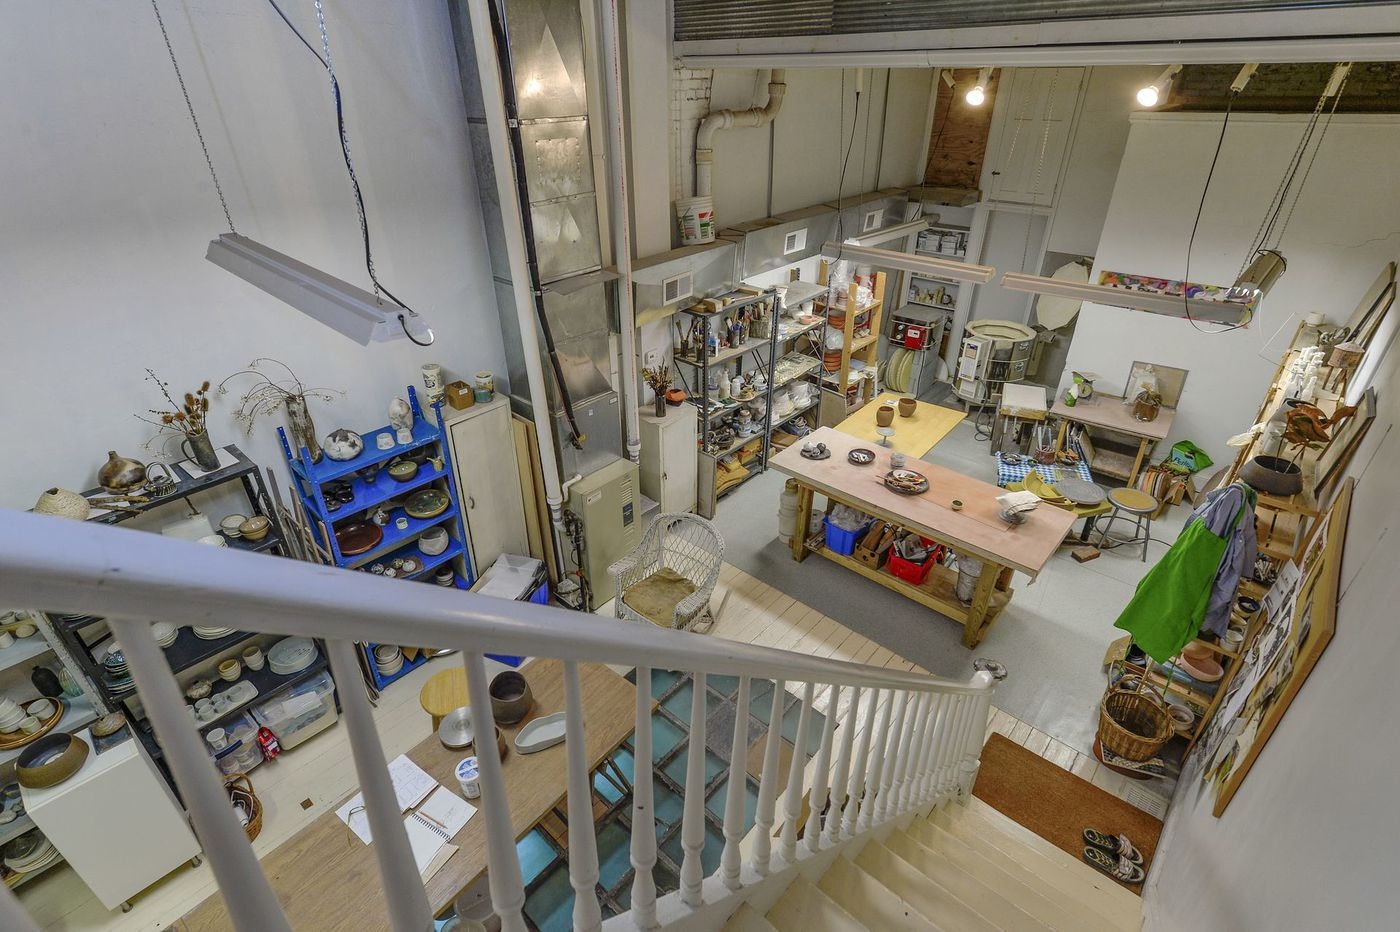 On the market: A live-in studio and more in Old City for $1.7 million